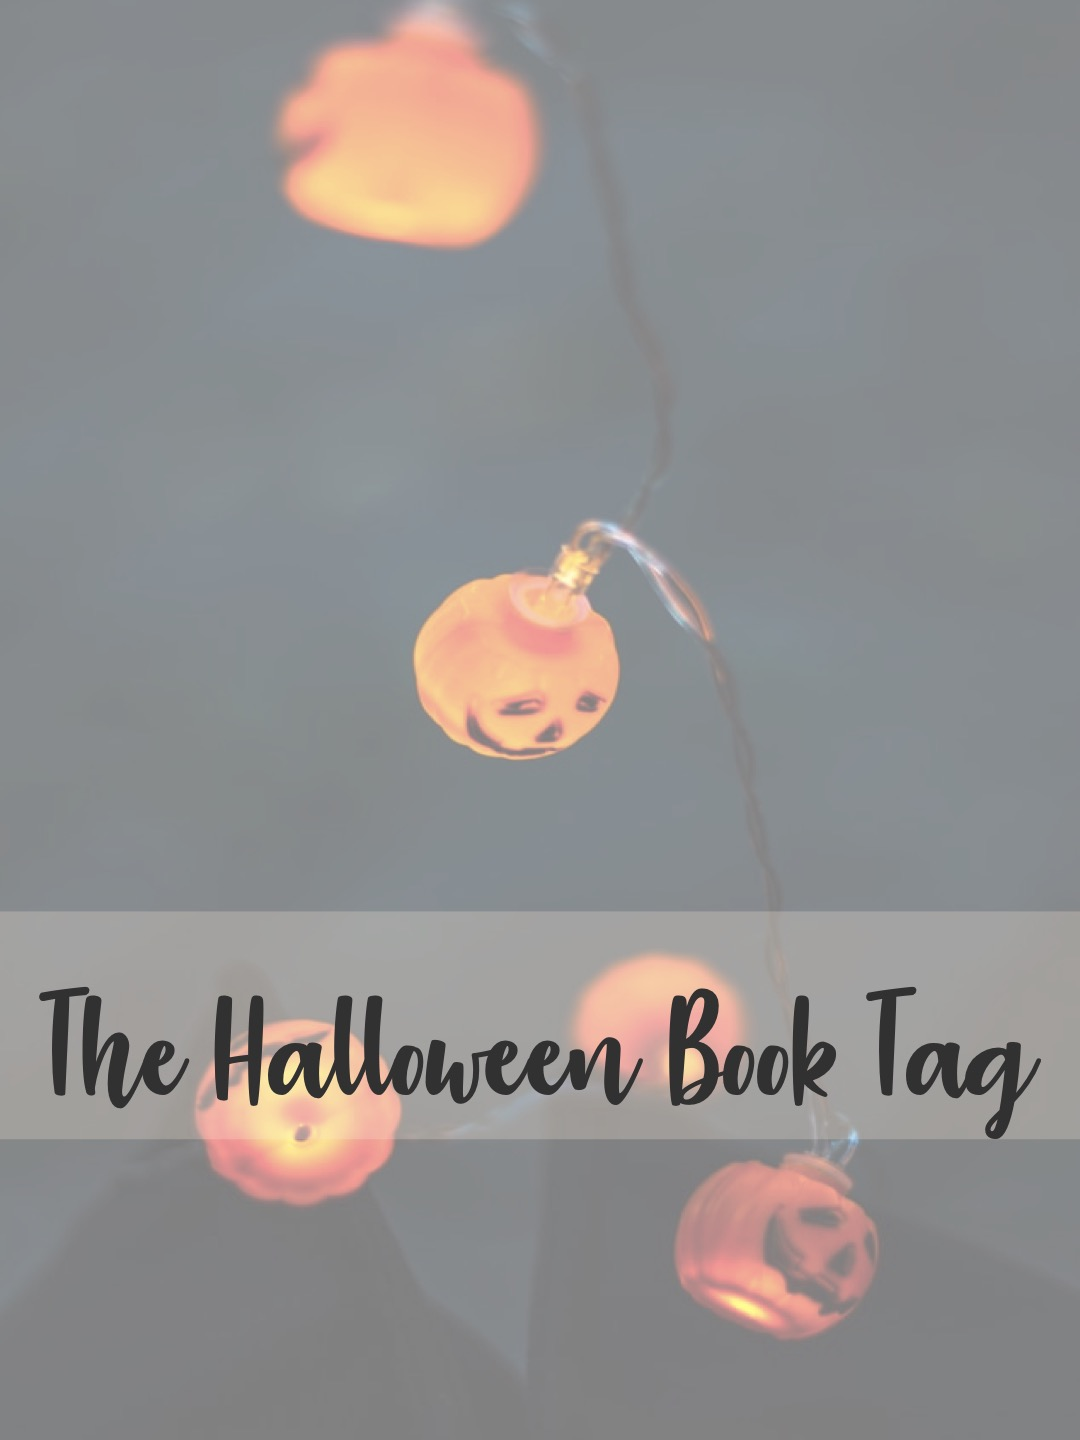 The Halloween Book Tag